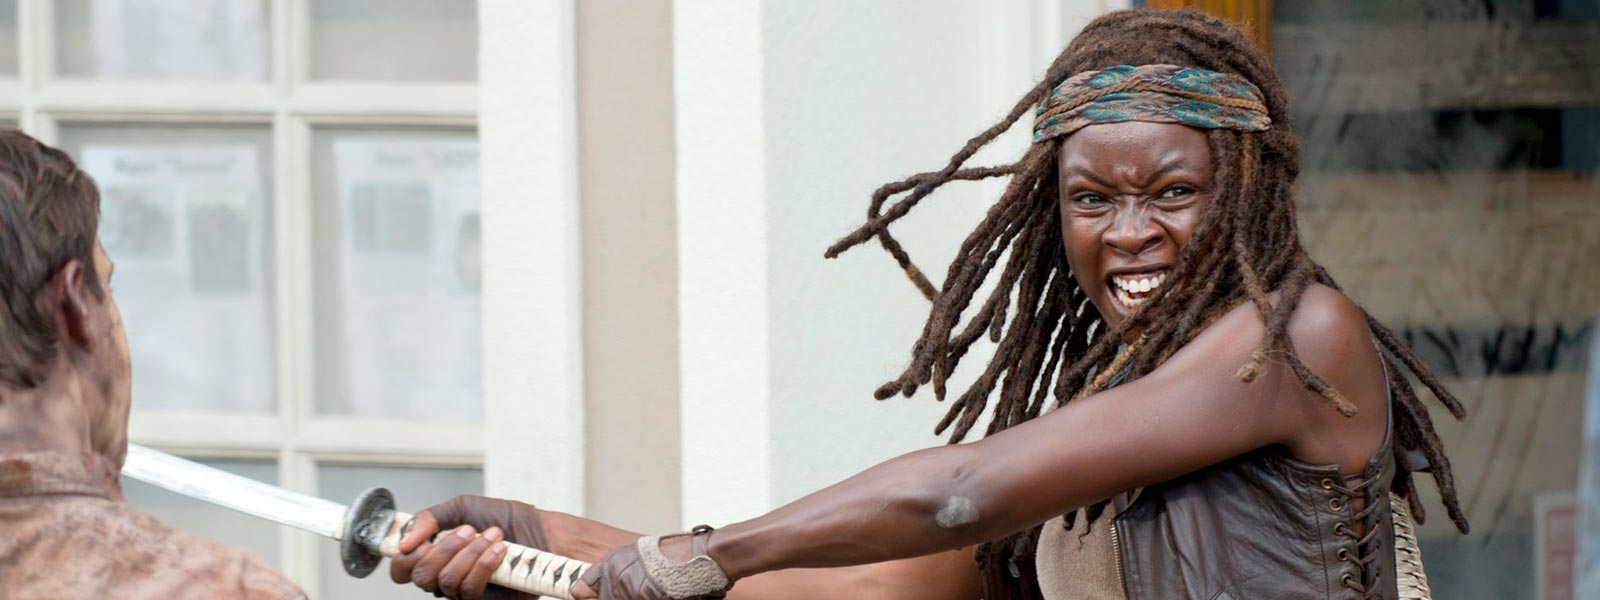 the-walking-dead-episode-603-michonne-gurira-post-800×600